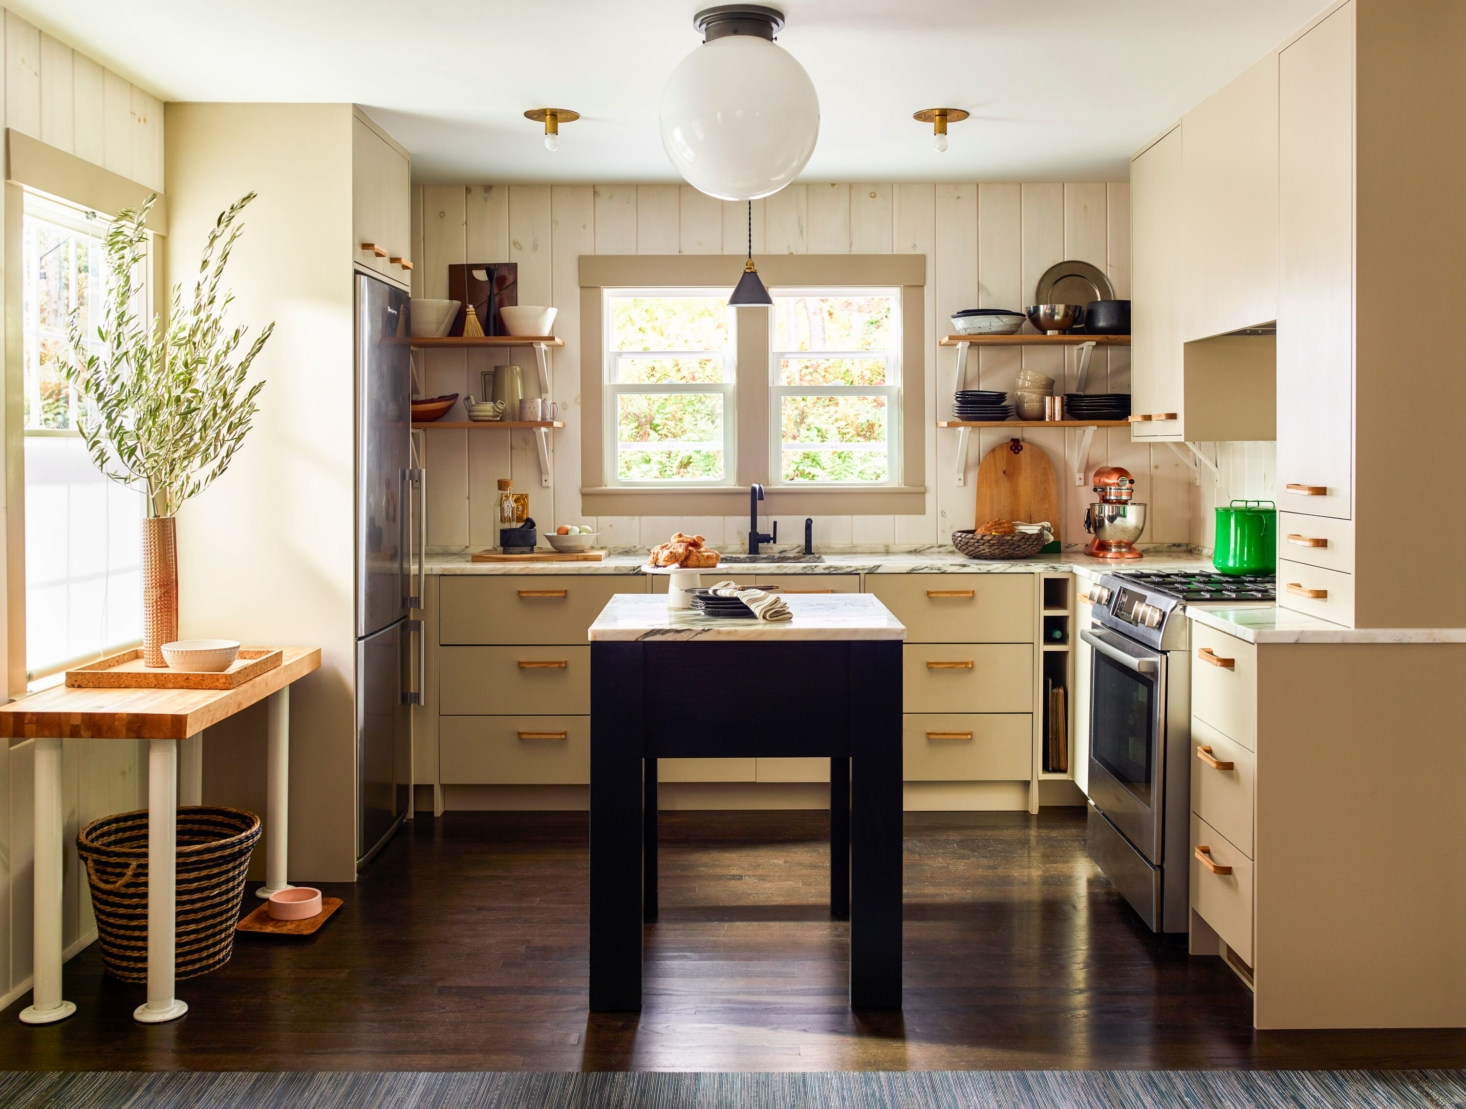 Steal This Look: The Design-Minded Country Kitchen, Budget Edition